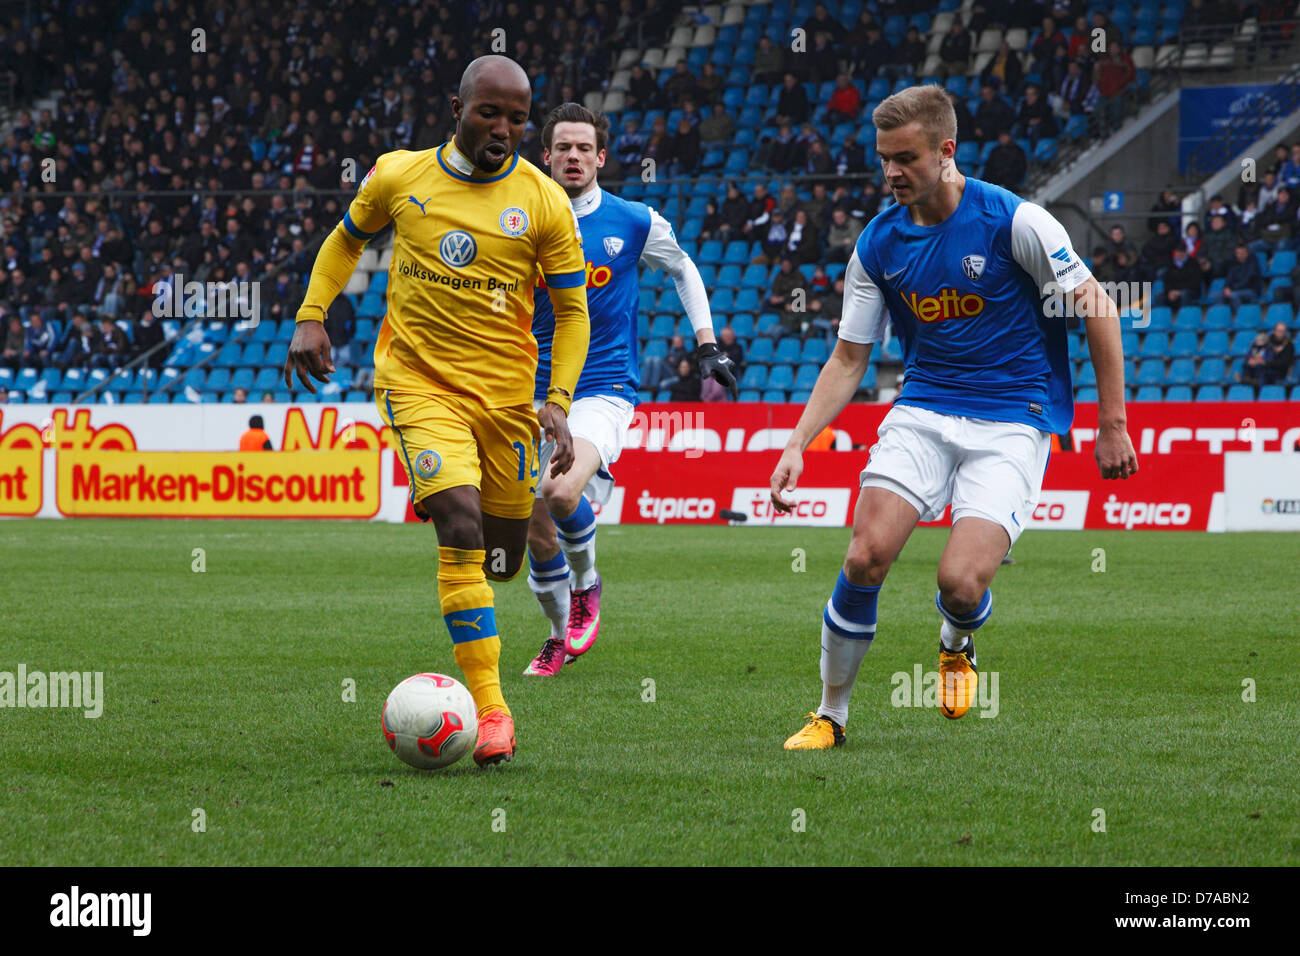 sports, football, 2. Bundesliga, German second league, 2012/2013, VfL Bochum versus Eintracht Brunswick 0:1, rewirpowerstadion - Stock Image